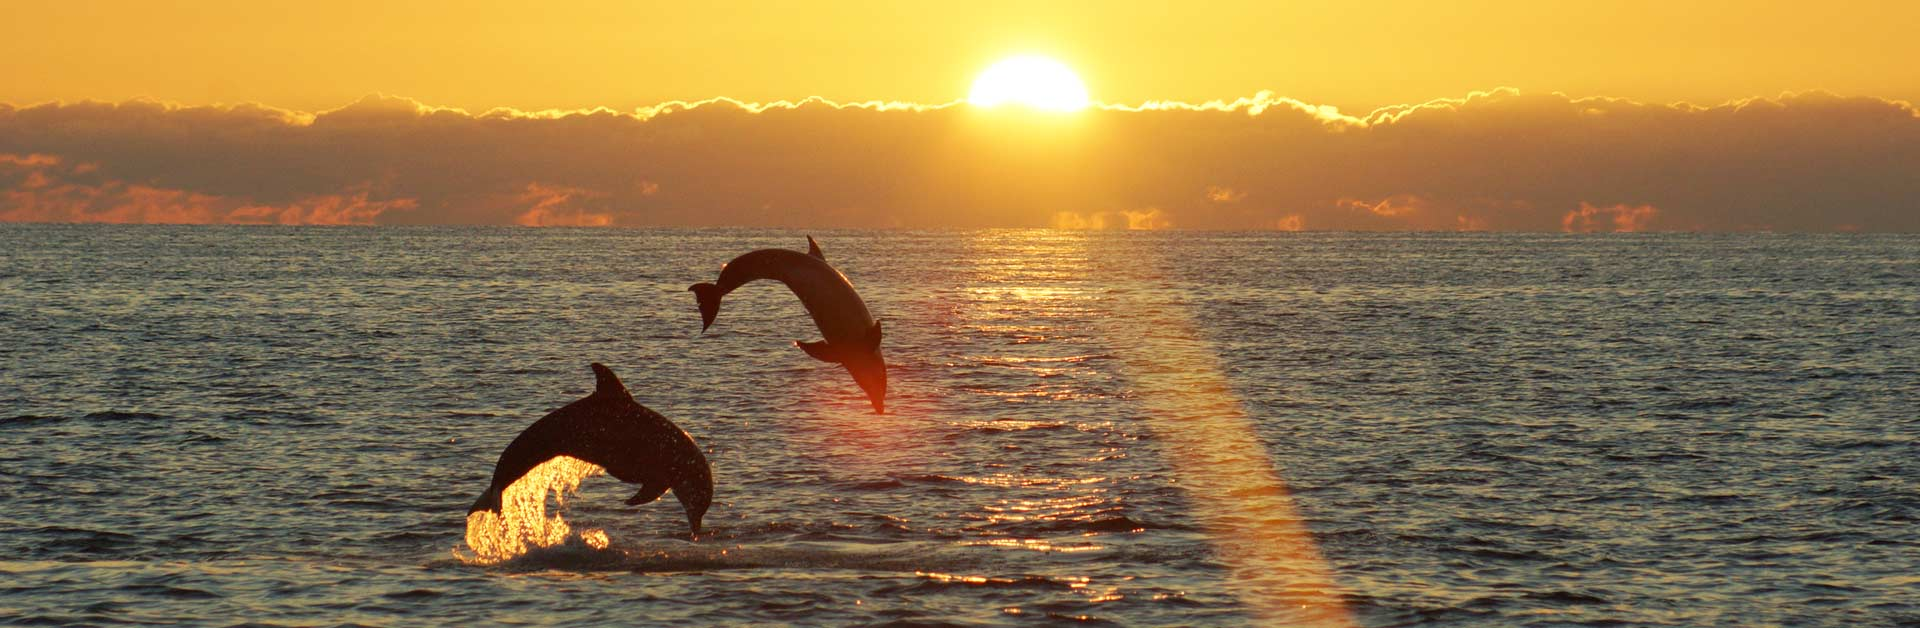 Dolphins jumping in the ocean.